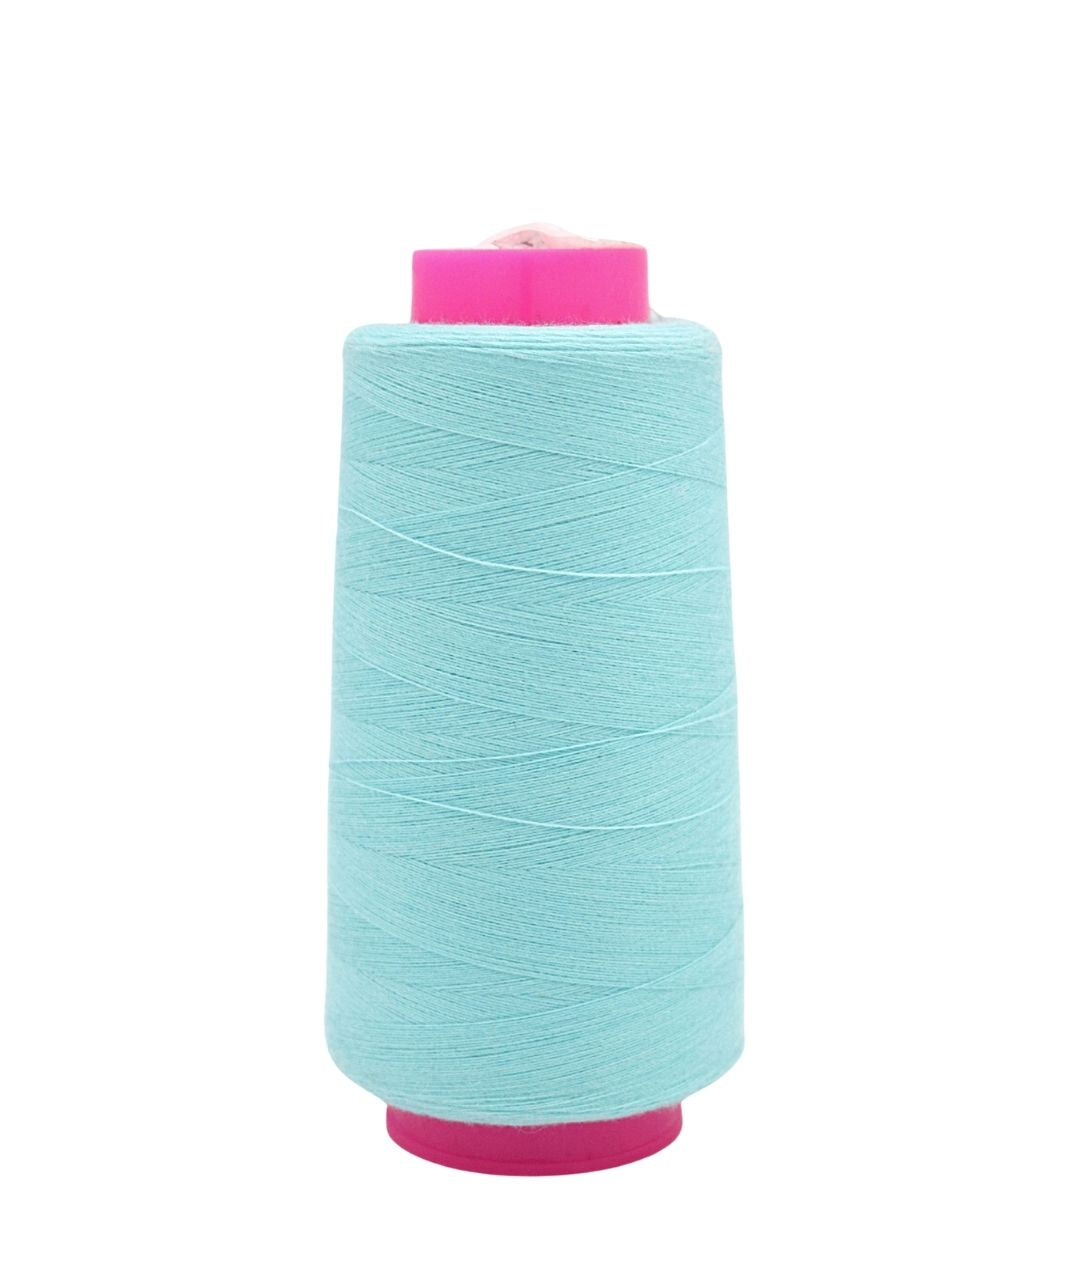 100% Recycled PET Thread Spools - various colours